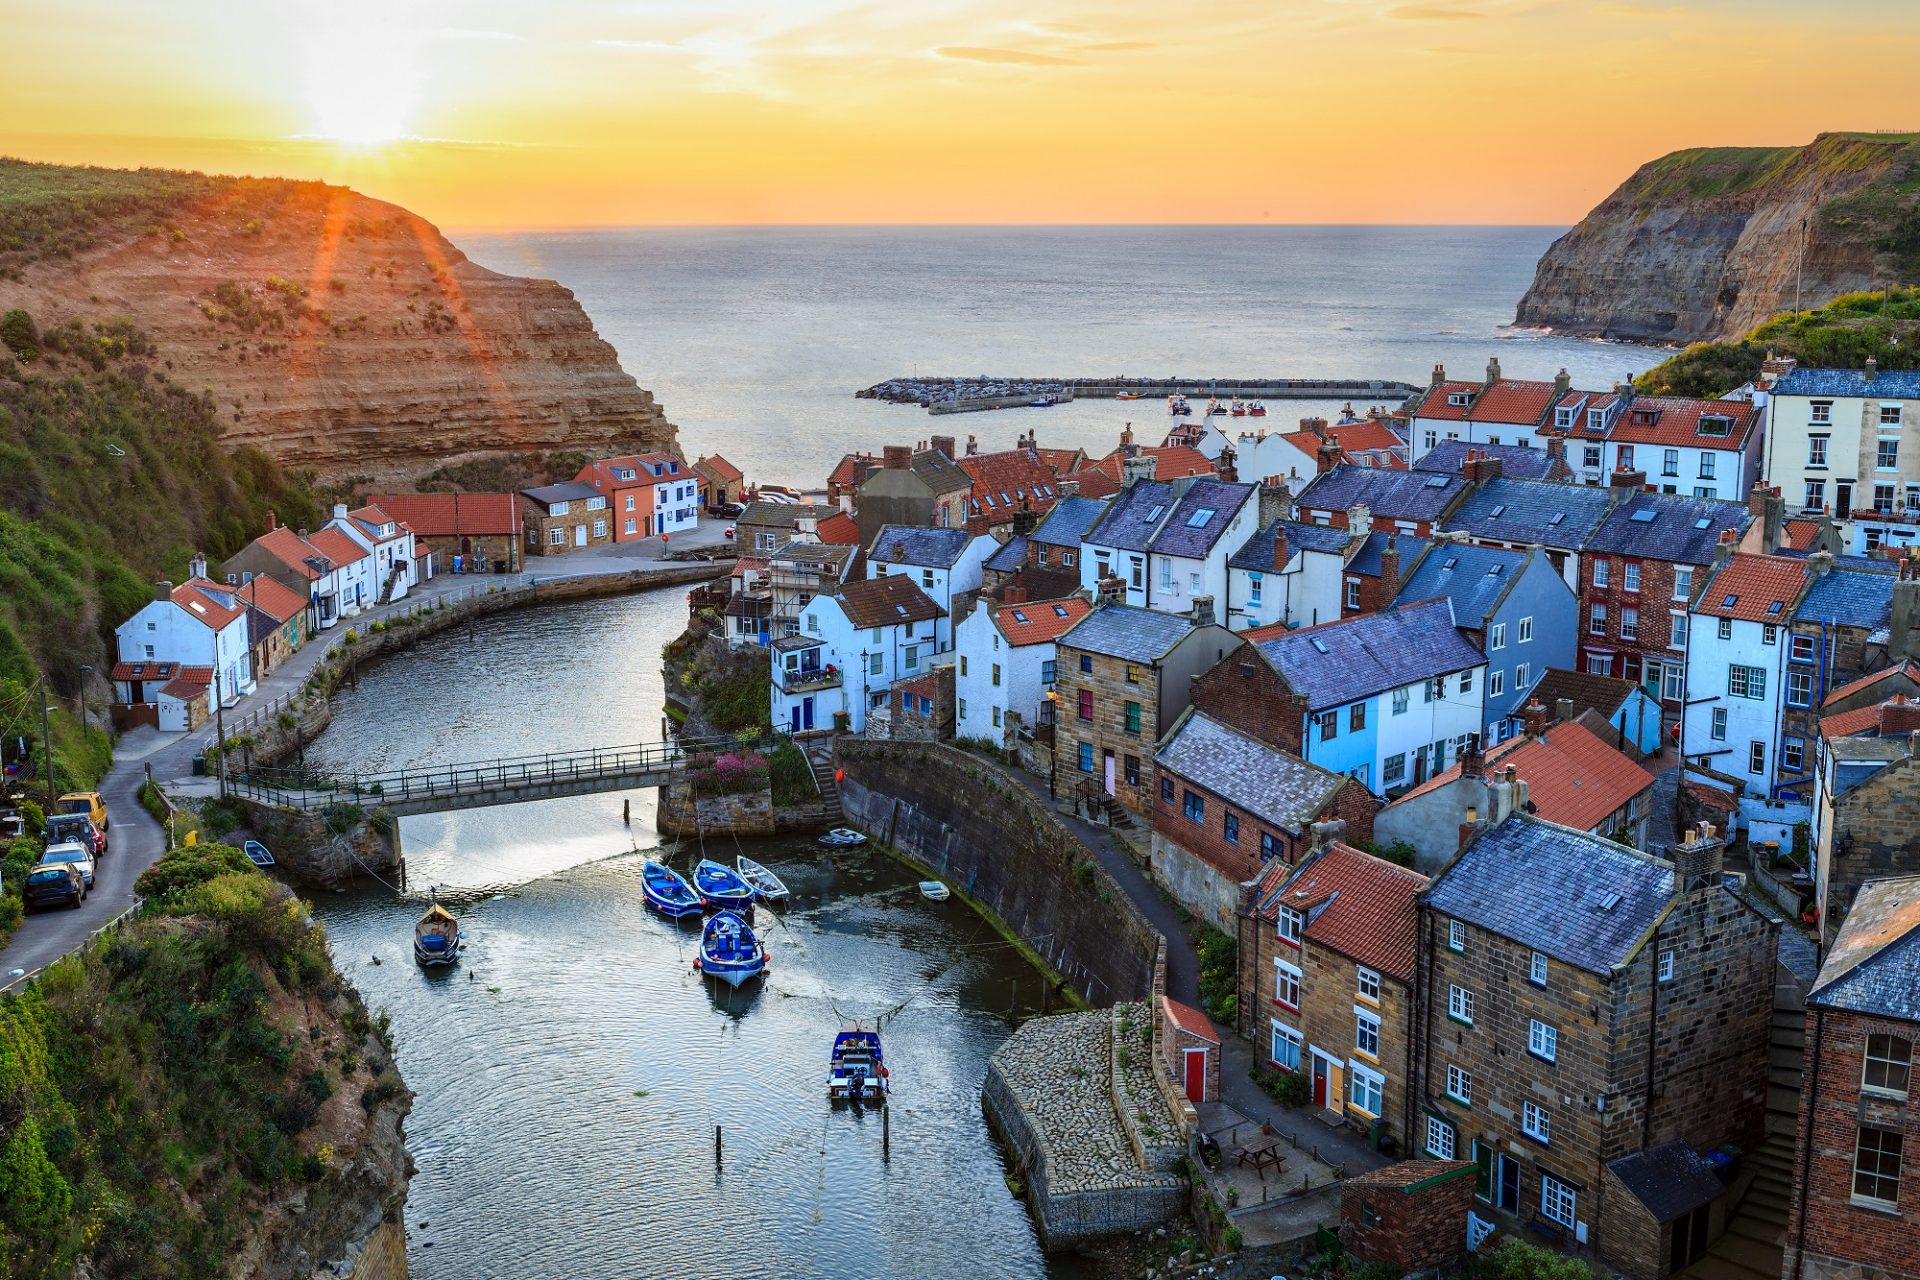 Sonnenuntergang in Slaithes in England